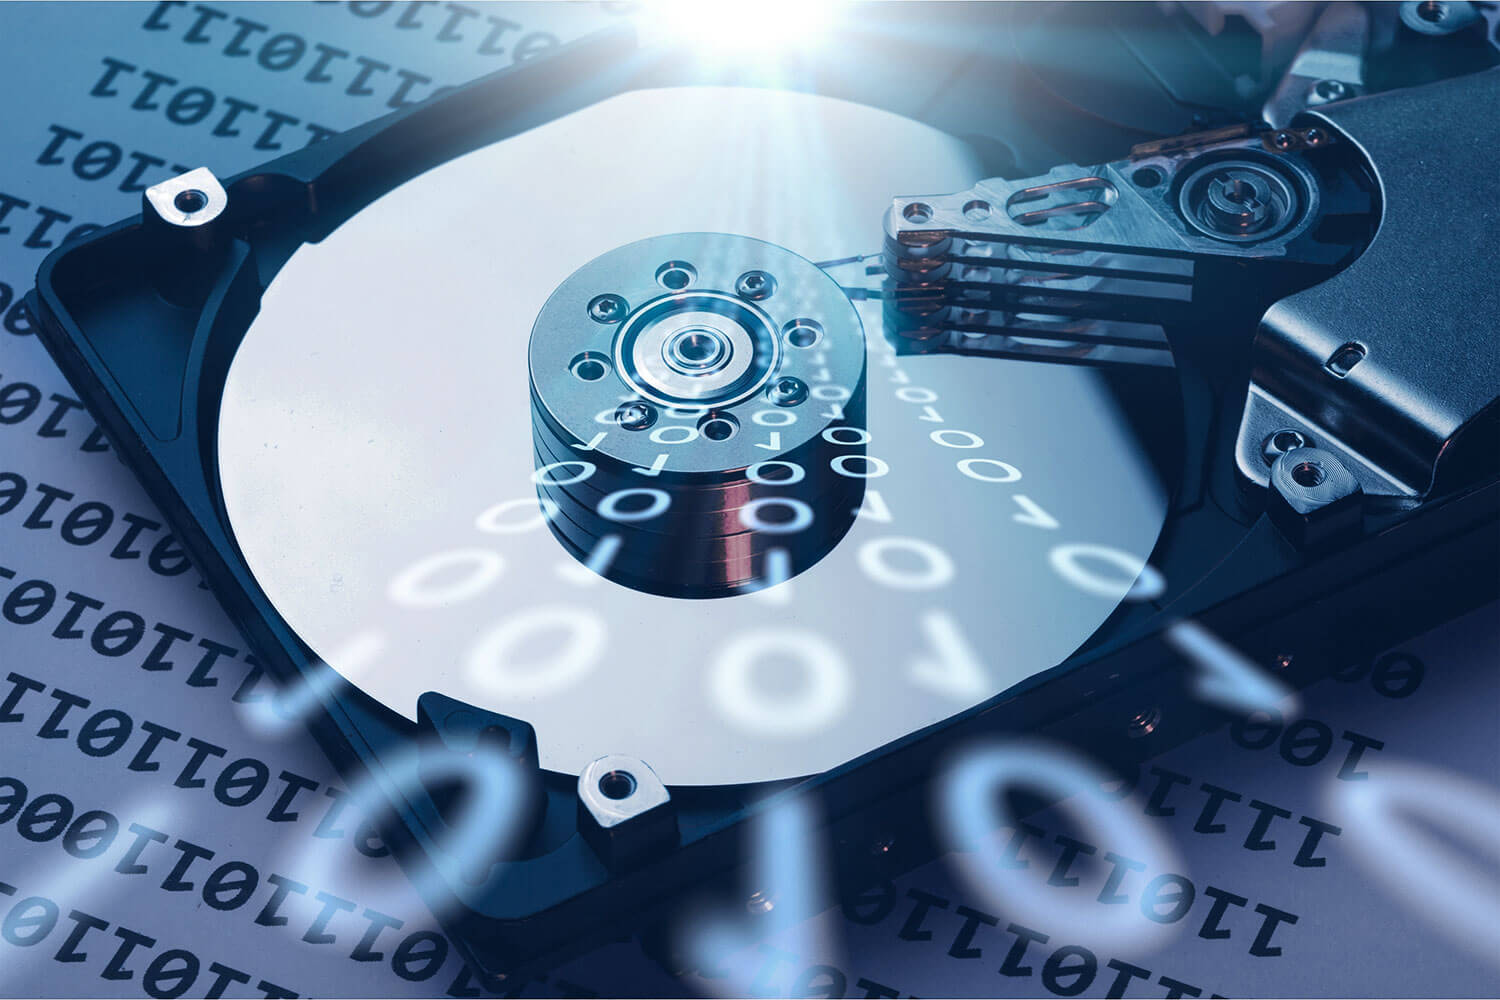 Encrypted media data recovery